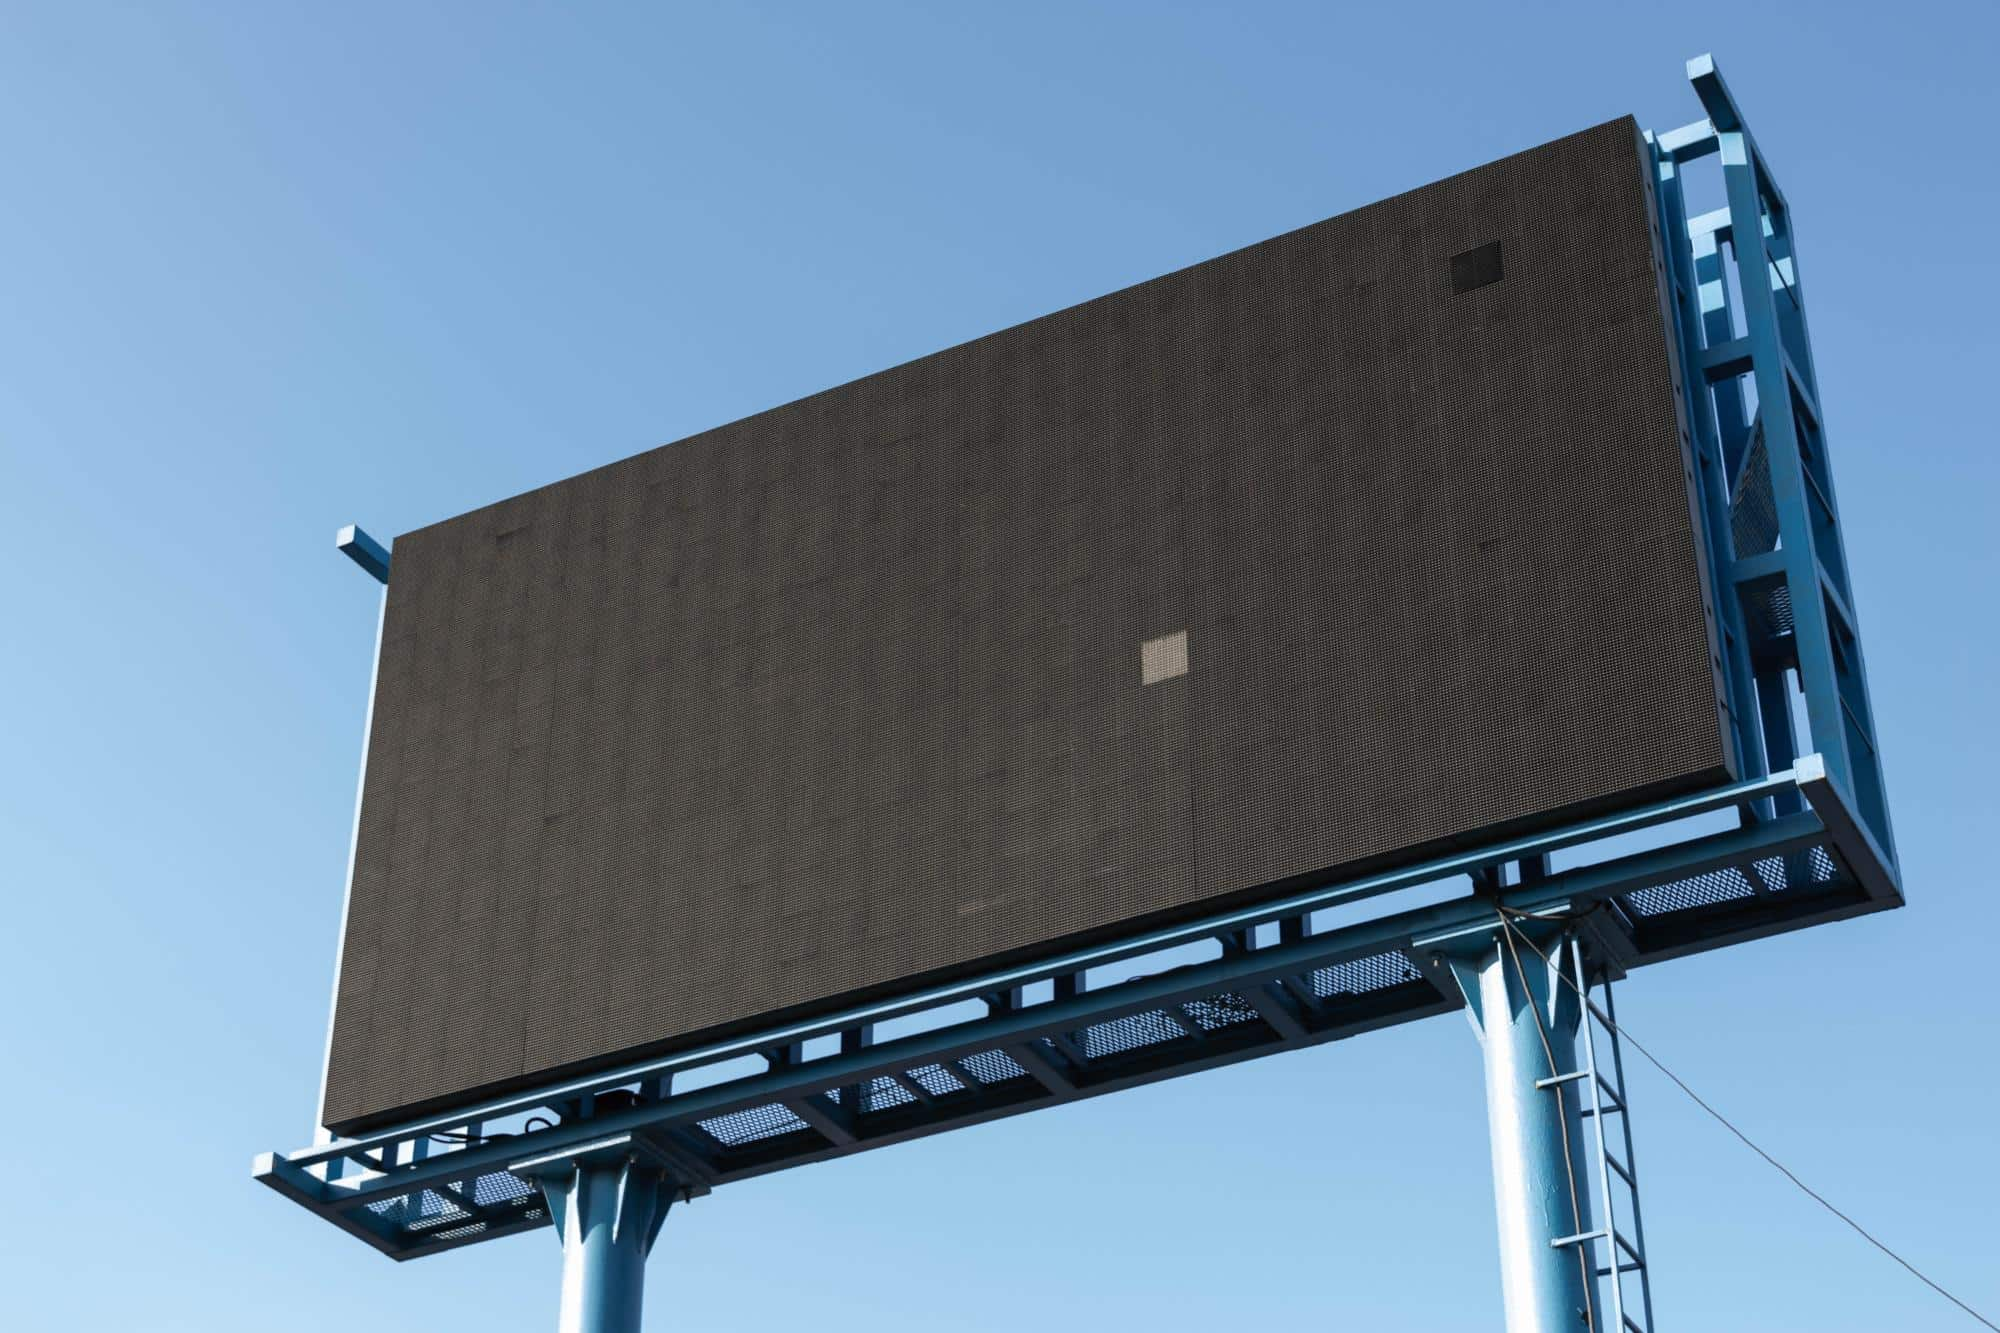 The reason for me to photograph this billboard is that it was turned off :) by Paweł Czerwiński